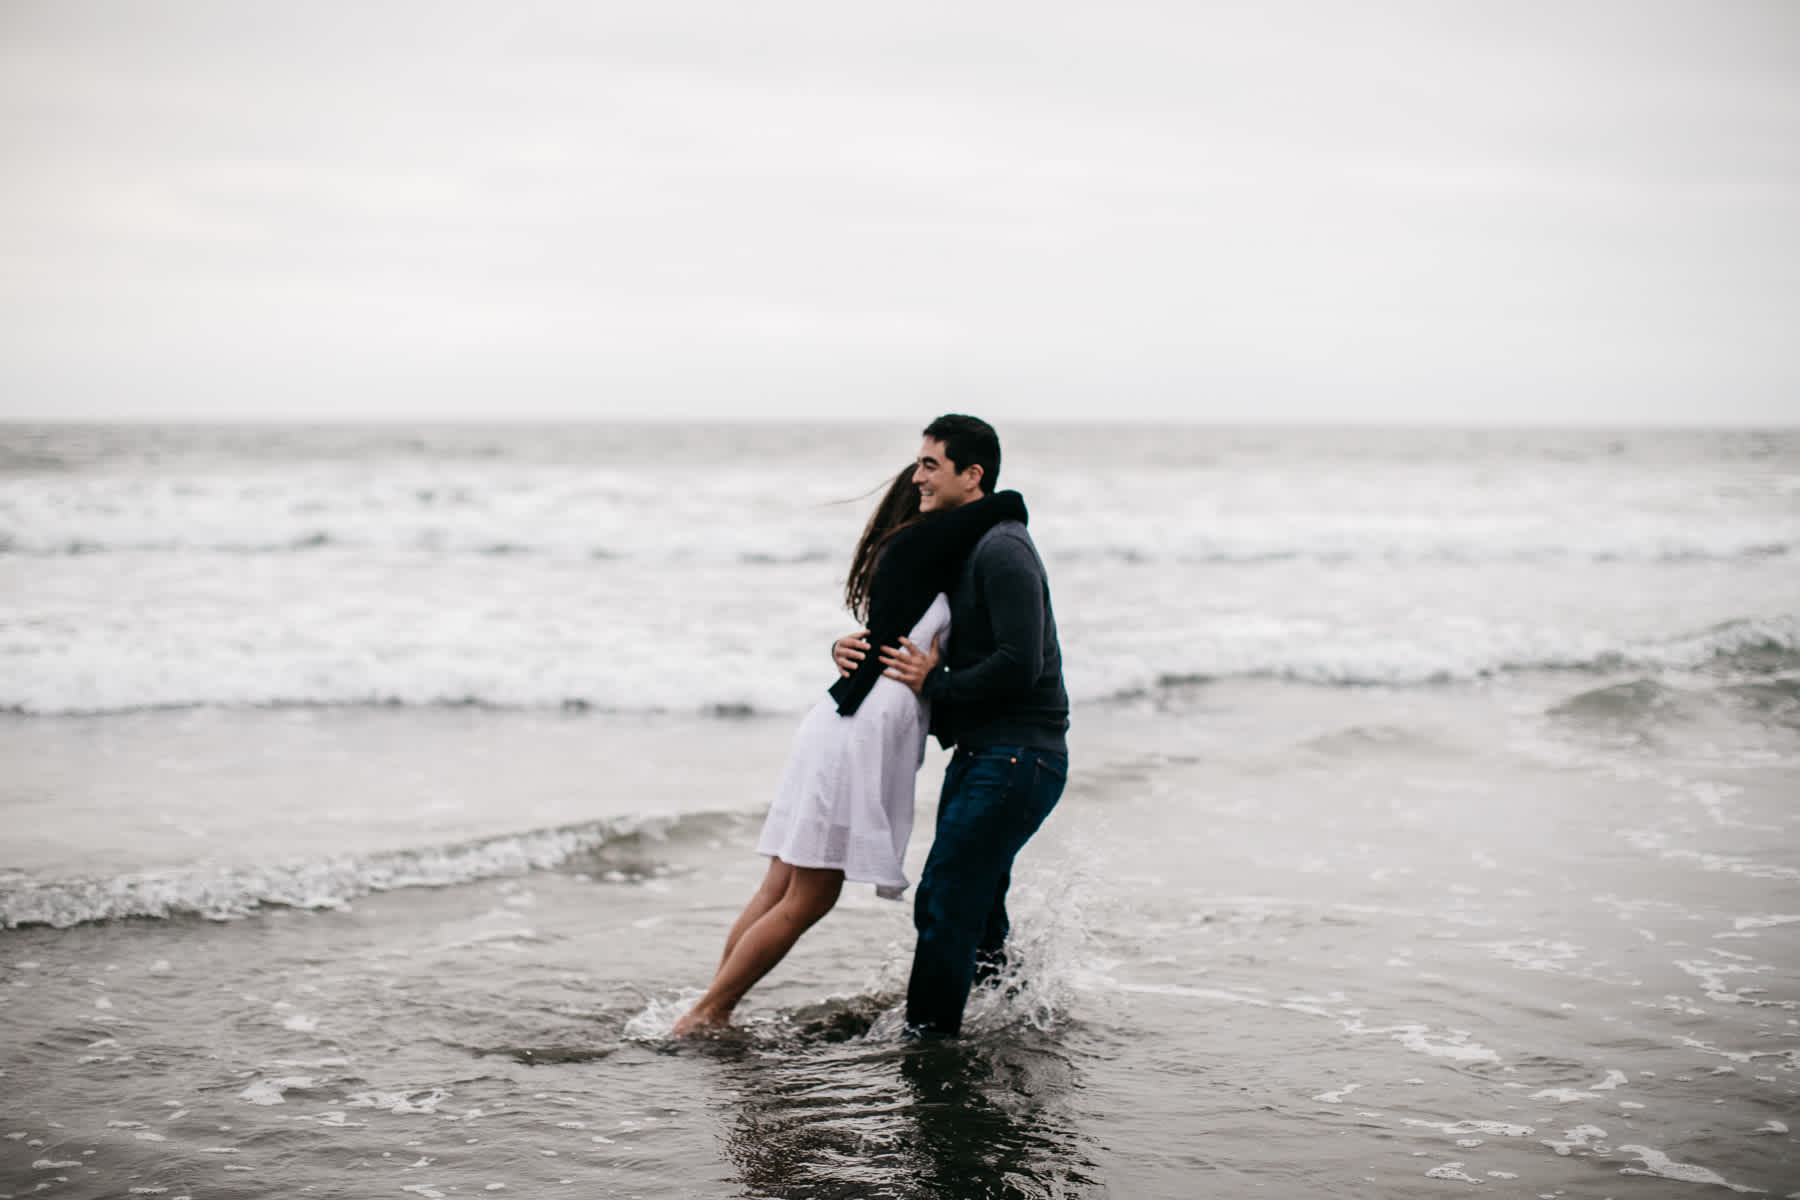 fort-funston-foggy-fun-beach-water-engagement-session-59